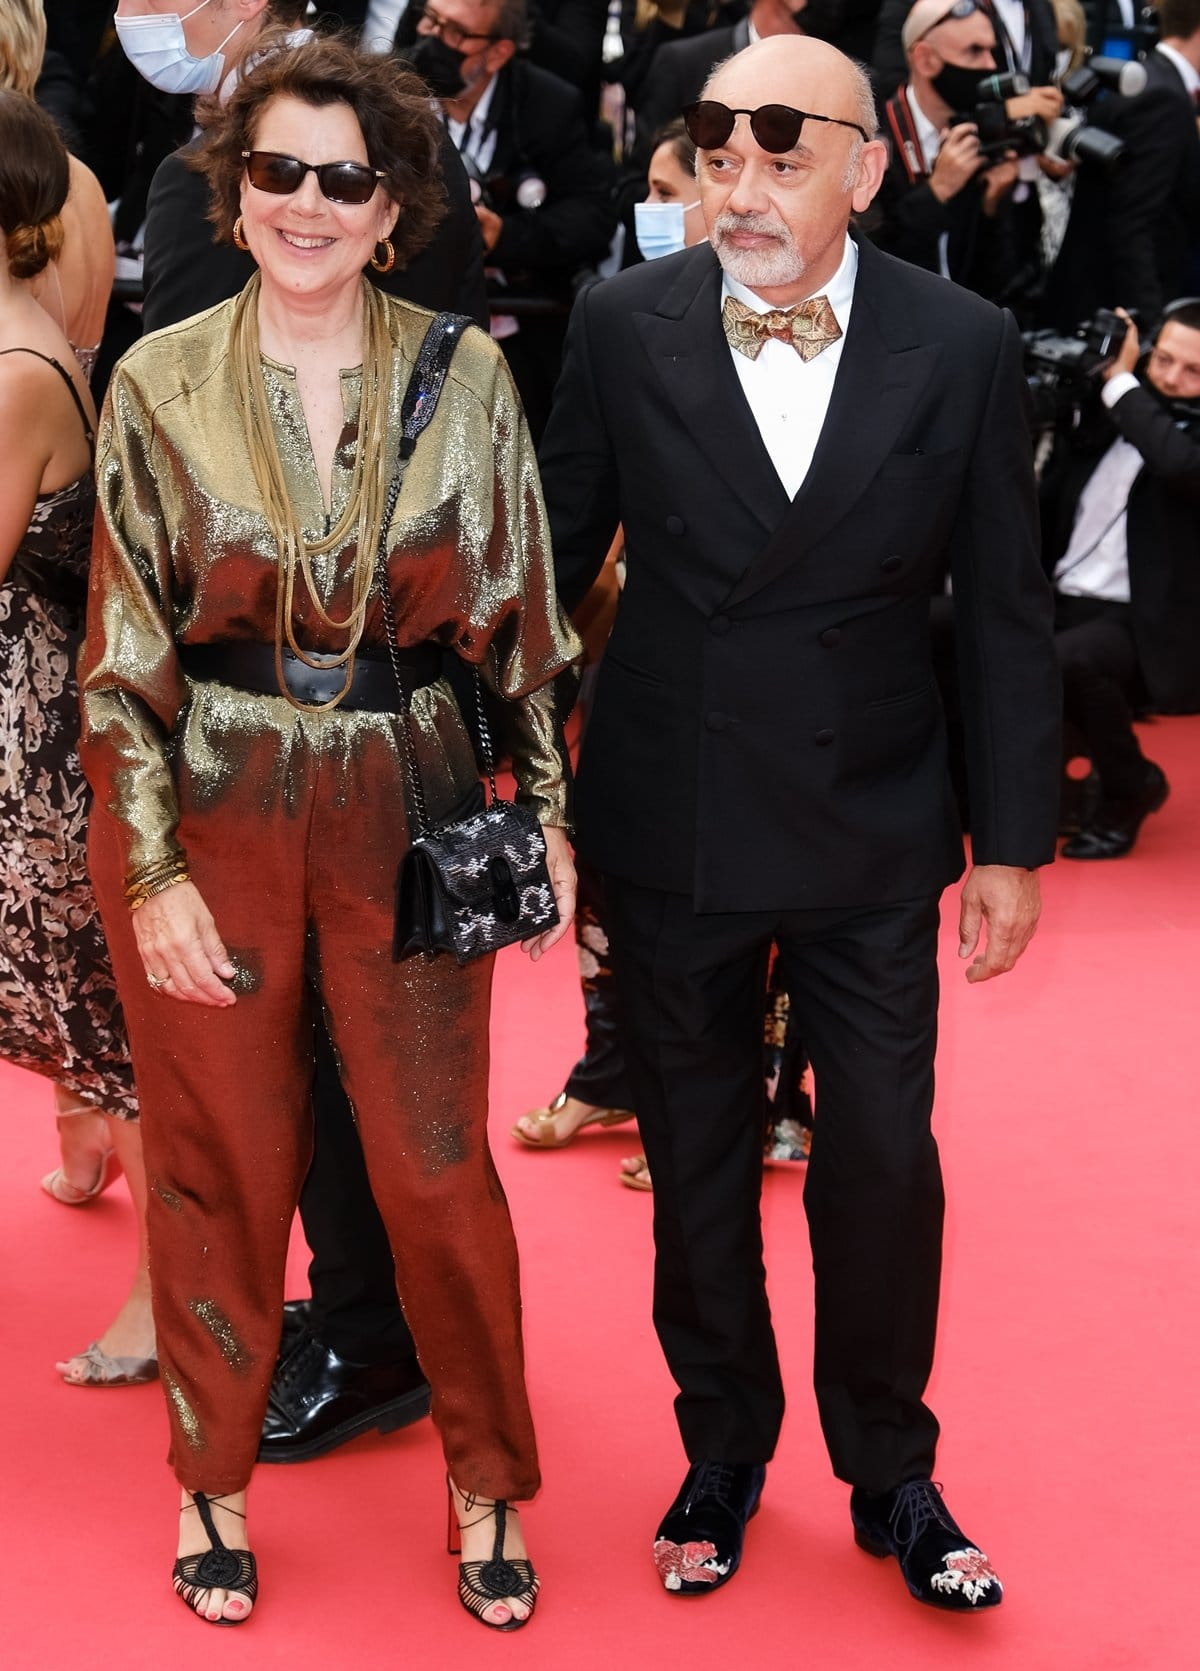 Christian Louboutin (R) and a guest attend the